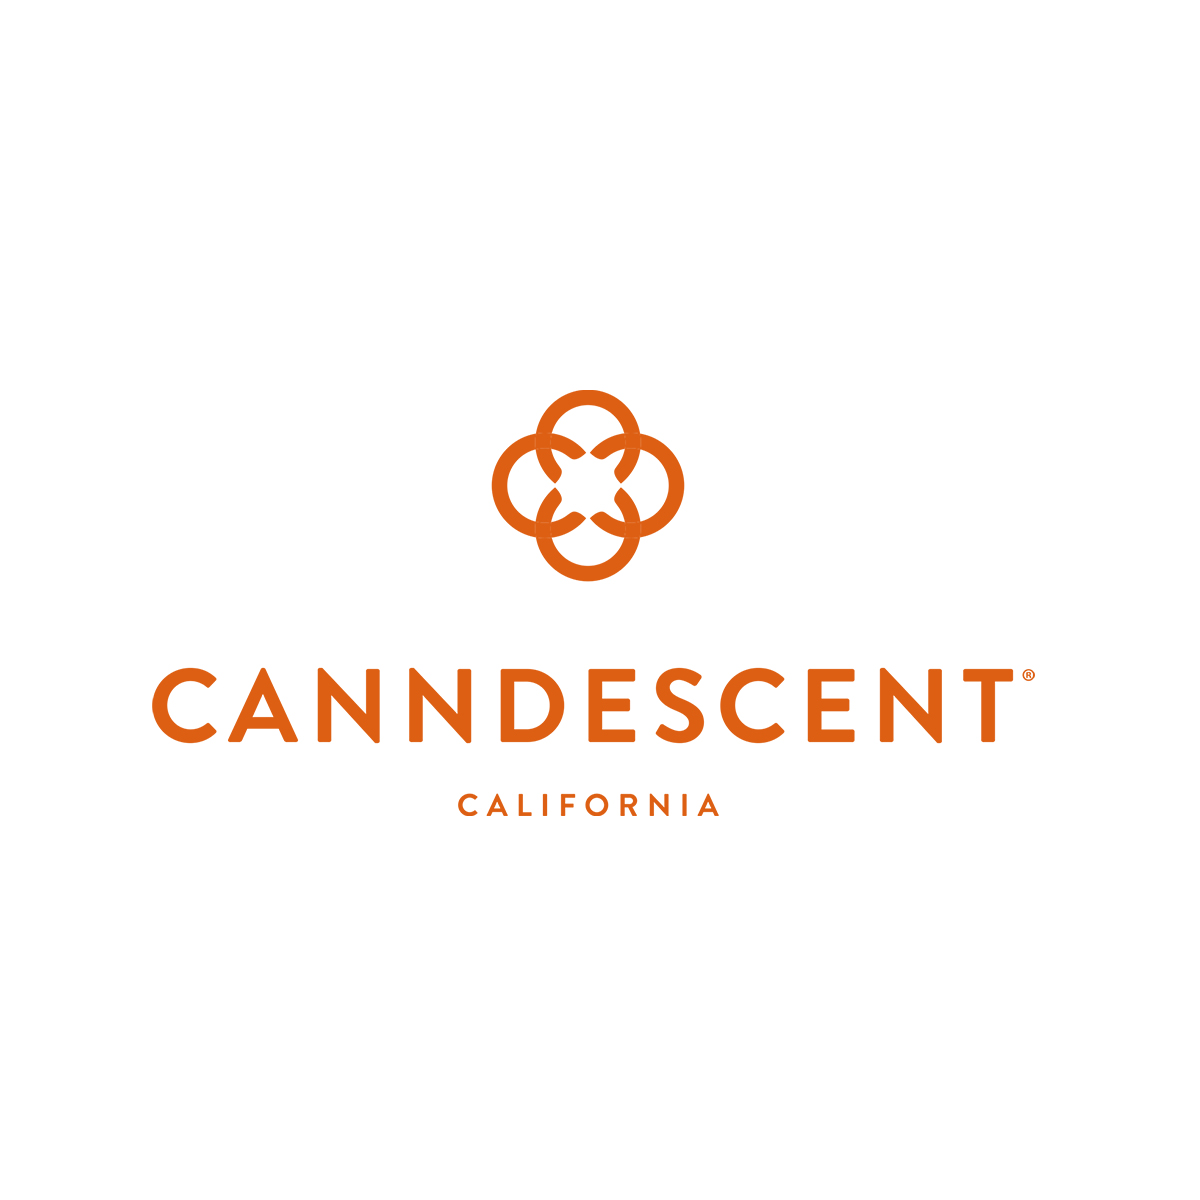 Luxury Cannabis Brand - The #1 selling cannabis flower in California, and the first cultivator on the planet to abandon strain names and market cannabis flowers based on effect — Calm, Cruise, Create, Connect, and Charge.